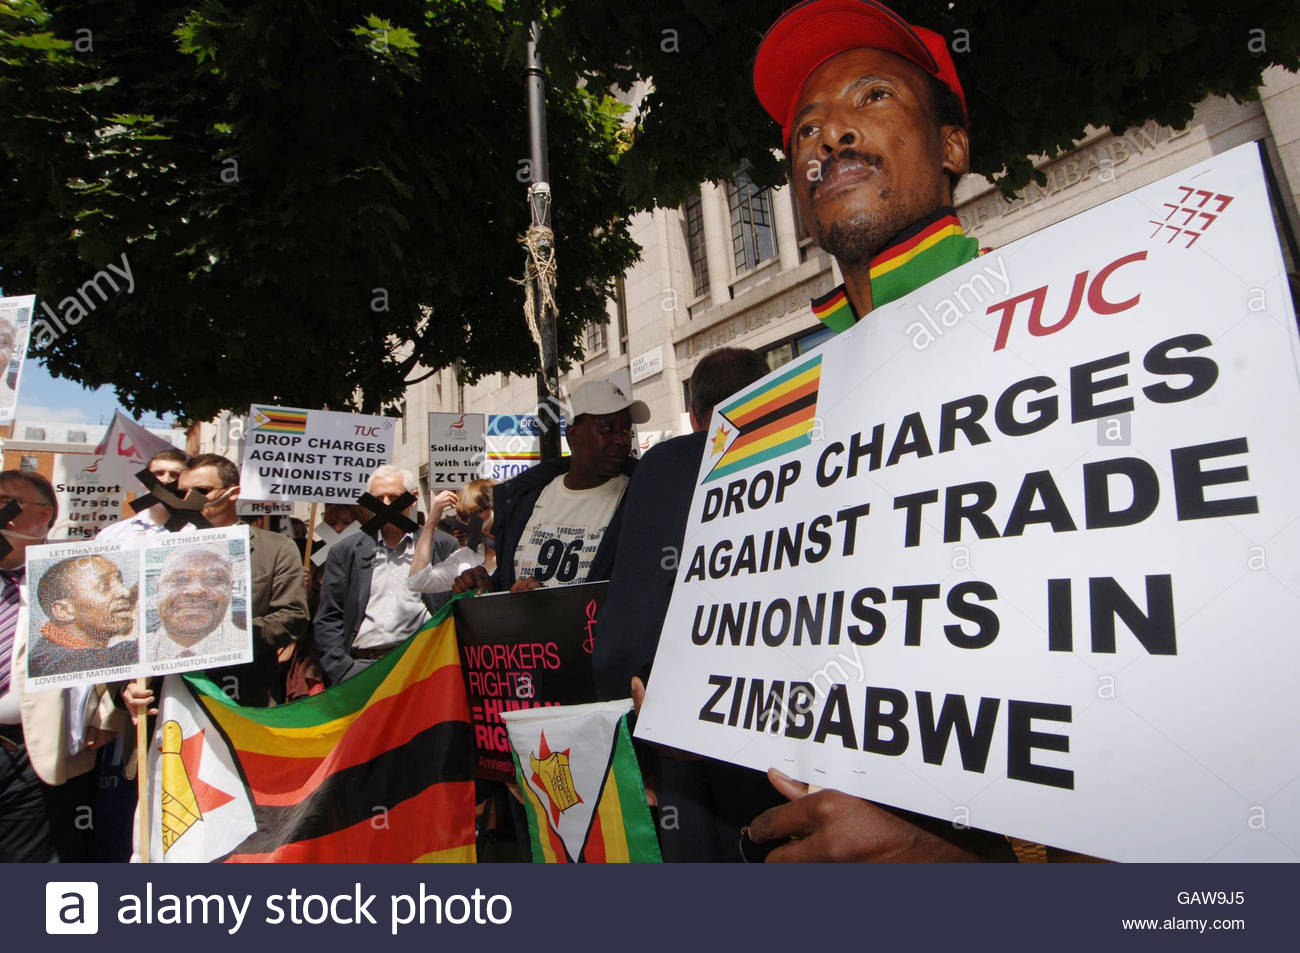 Zimbabwe still not safe – Sheffield Protest Against Deportations July 25